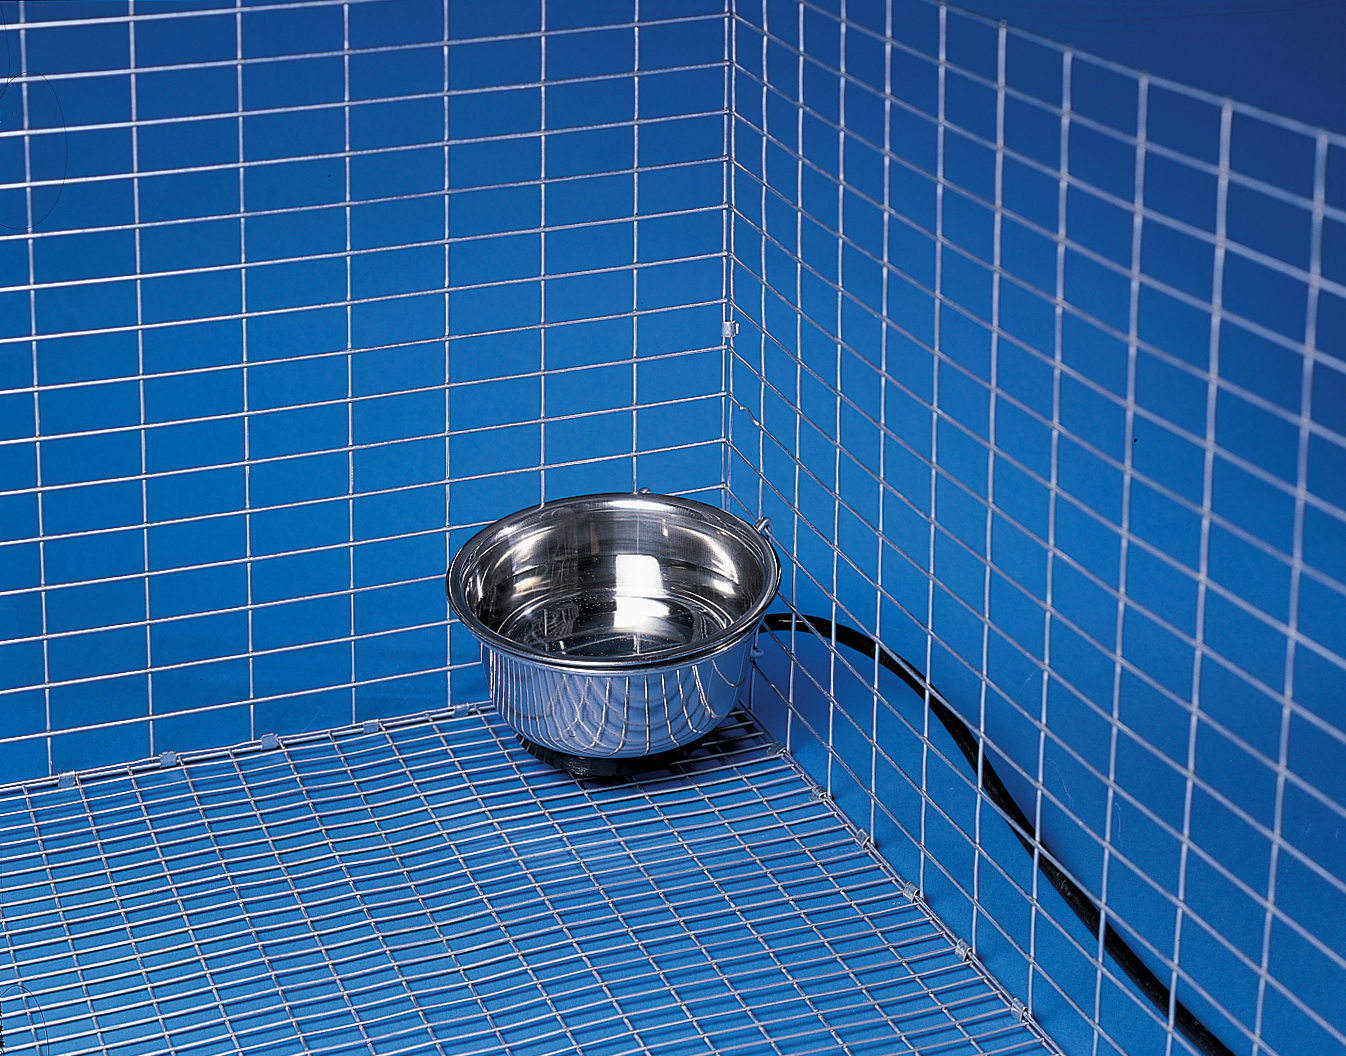 Allied Precision 90 1 qt Stainless Steel Heated Pet Bowl with Hutch Mount by Miller Manufacturing